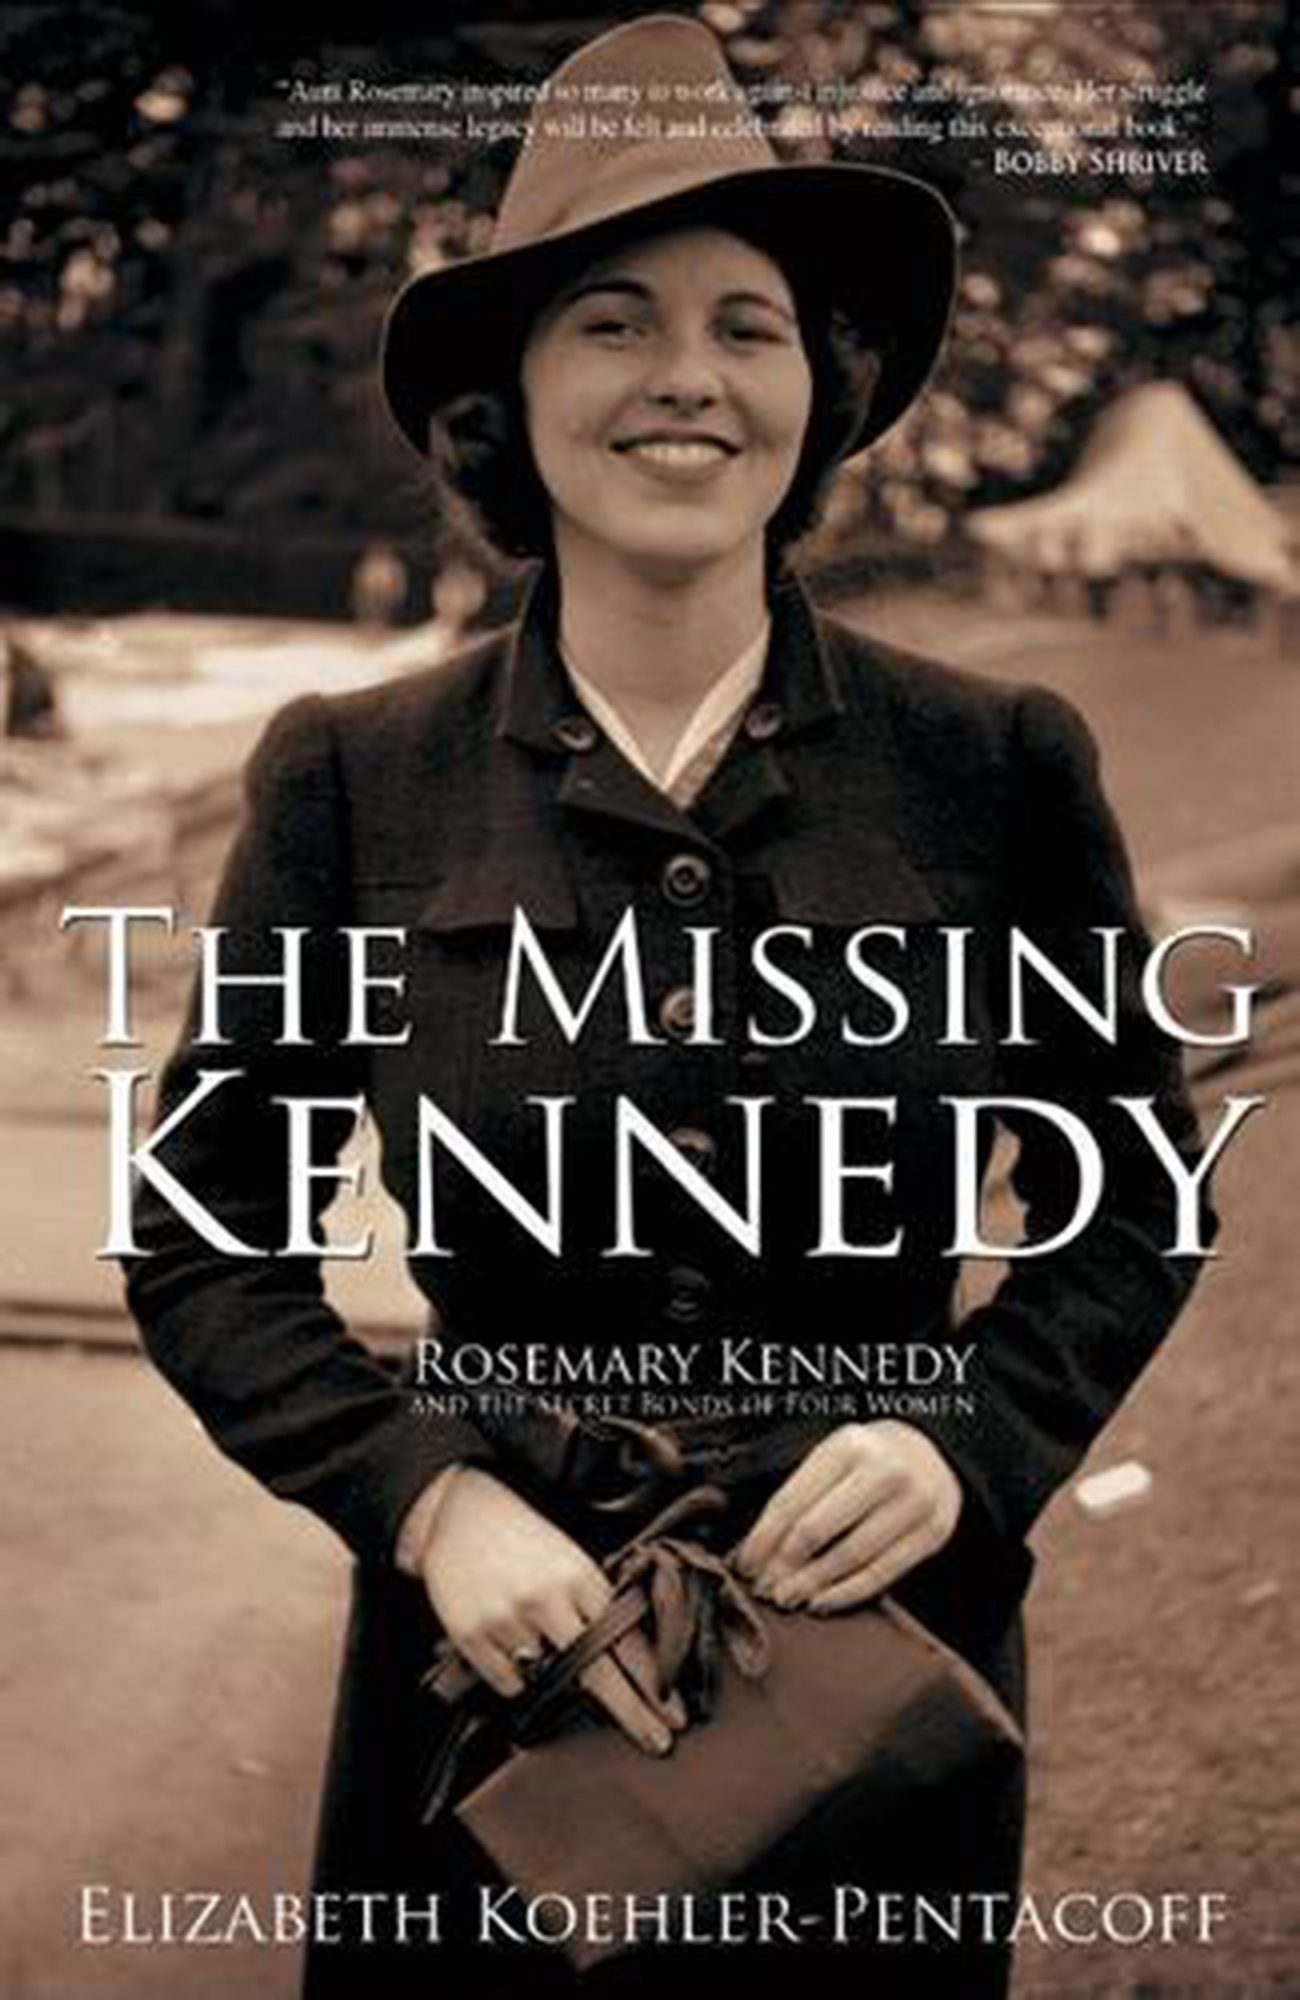 The Missing Kennedy: Rosemary Kennedy and the Secret Bonds of Four Women by Elizabeth Koehler-Pentacoff